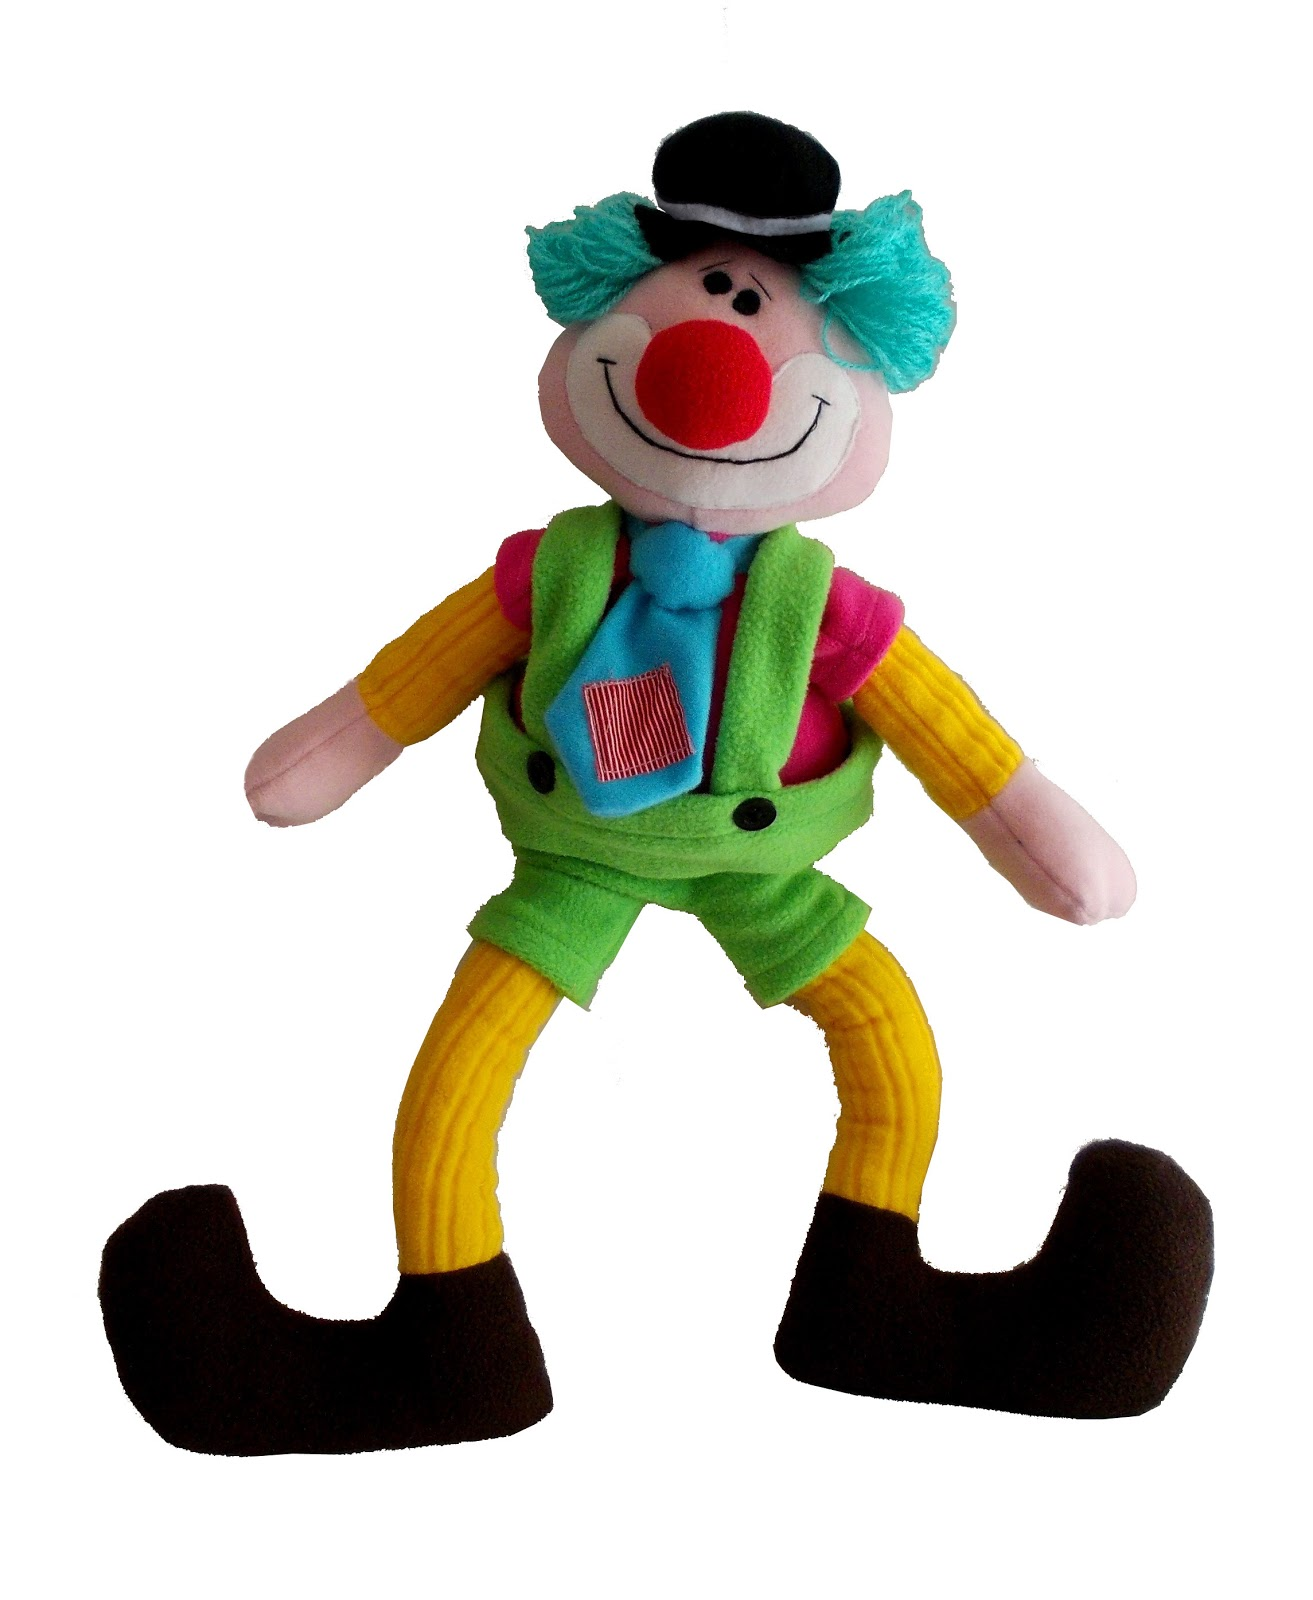 clown hat template - search results for hat template calendar 2015